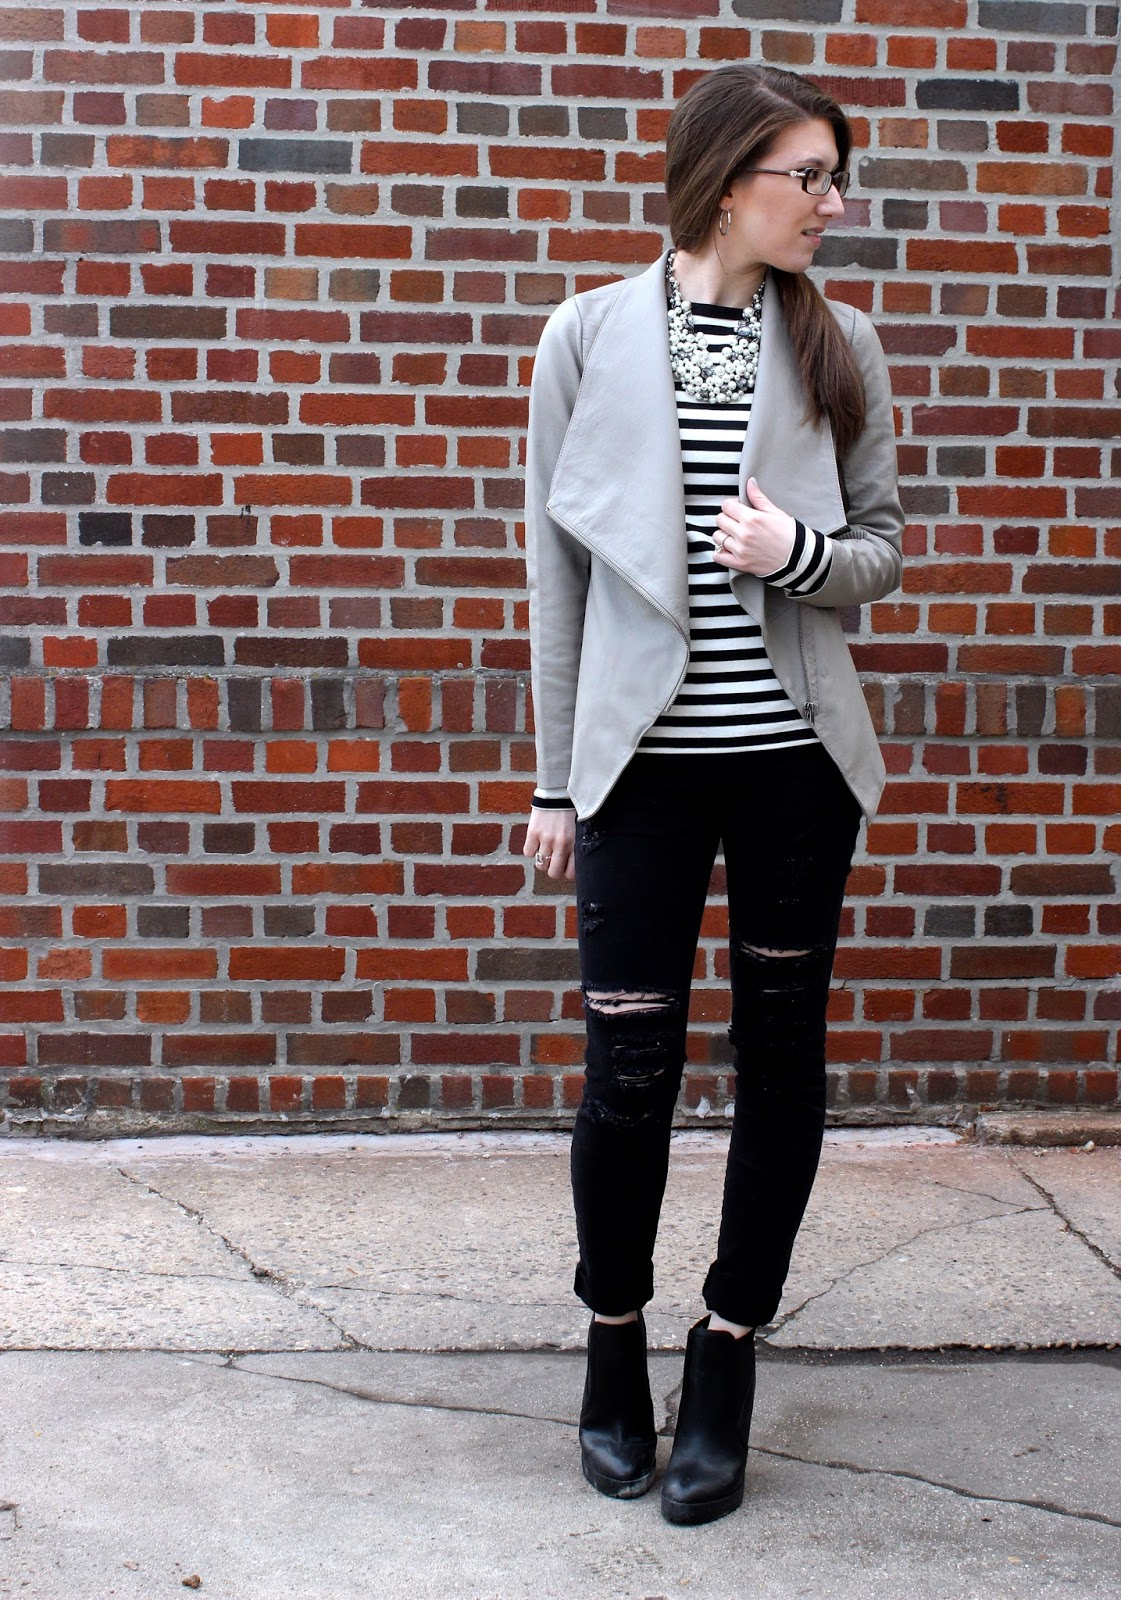 Stripes + Pearls // Work Wear Wednesday